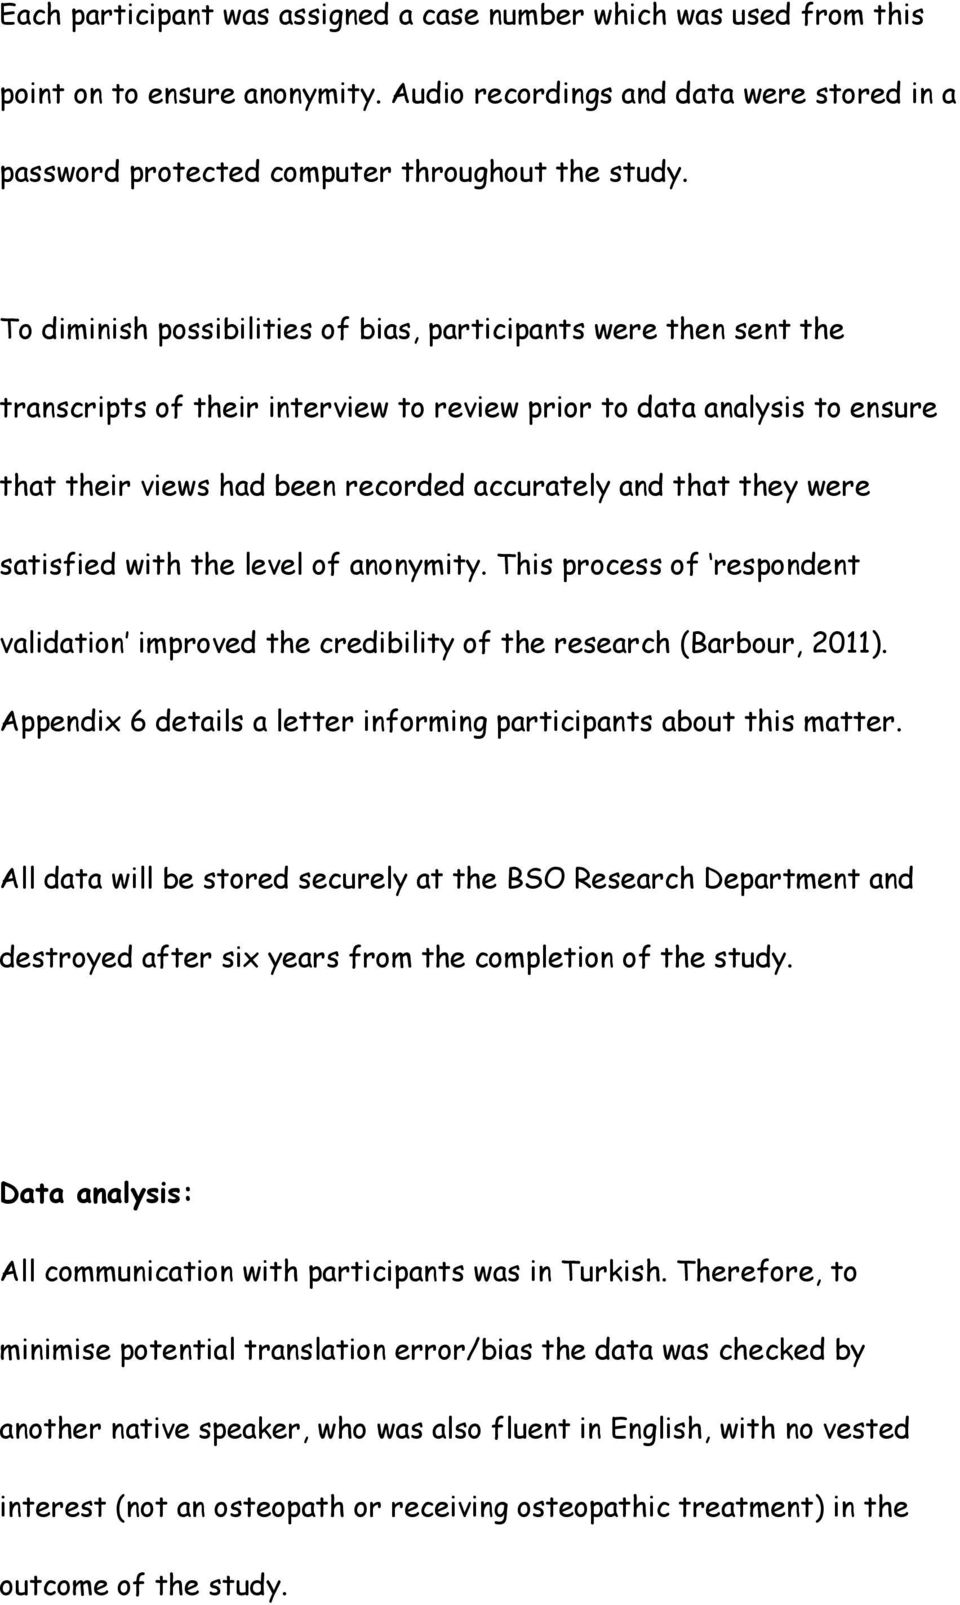 they were satisfied with the level of anonymity. This process of respondent validation improved the credibility of the research (Barbour, 2011).